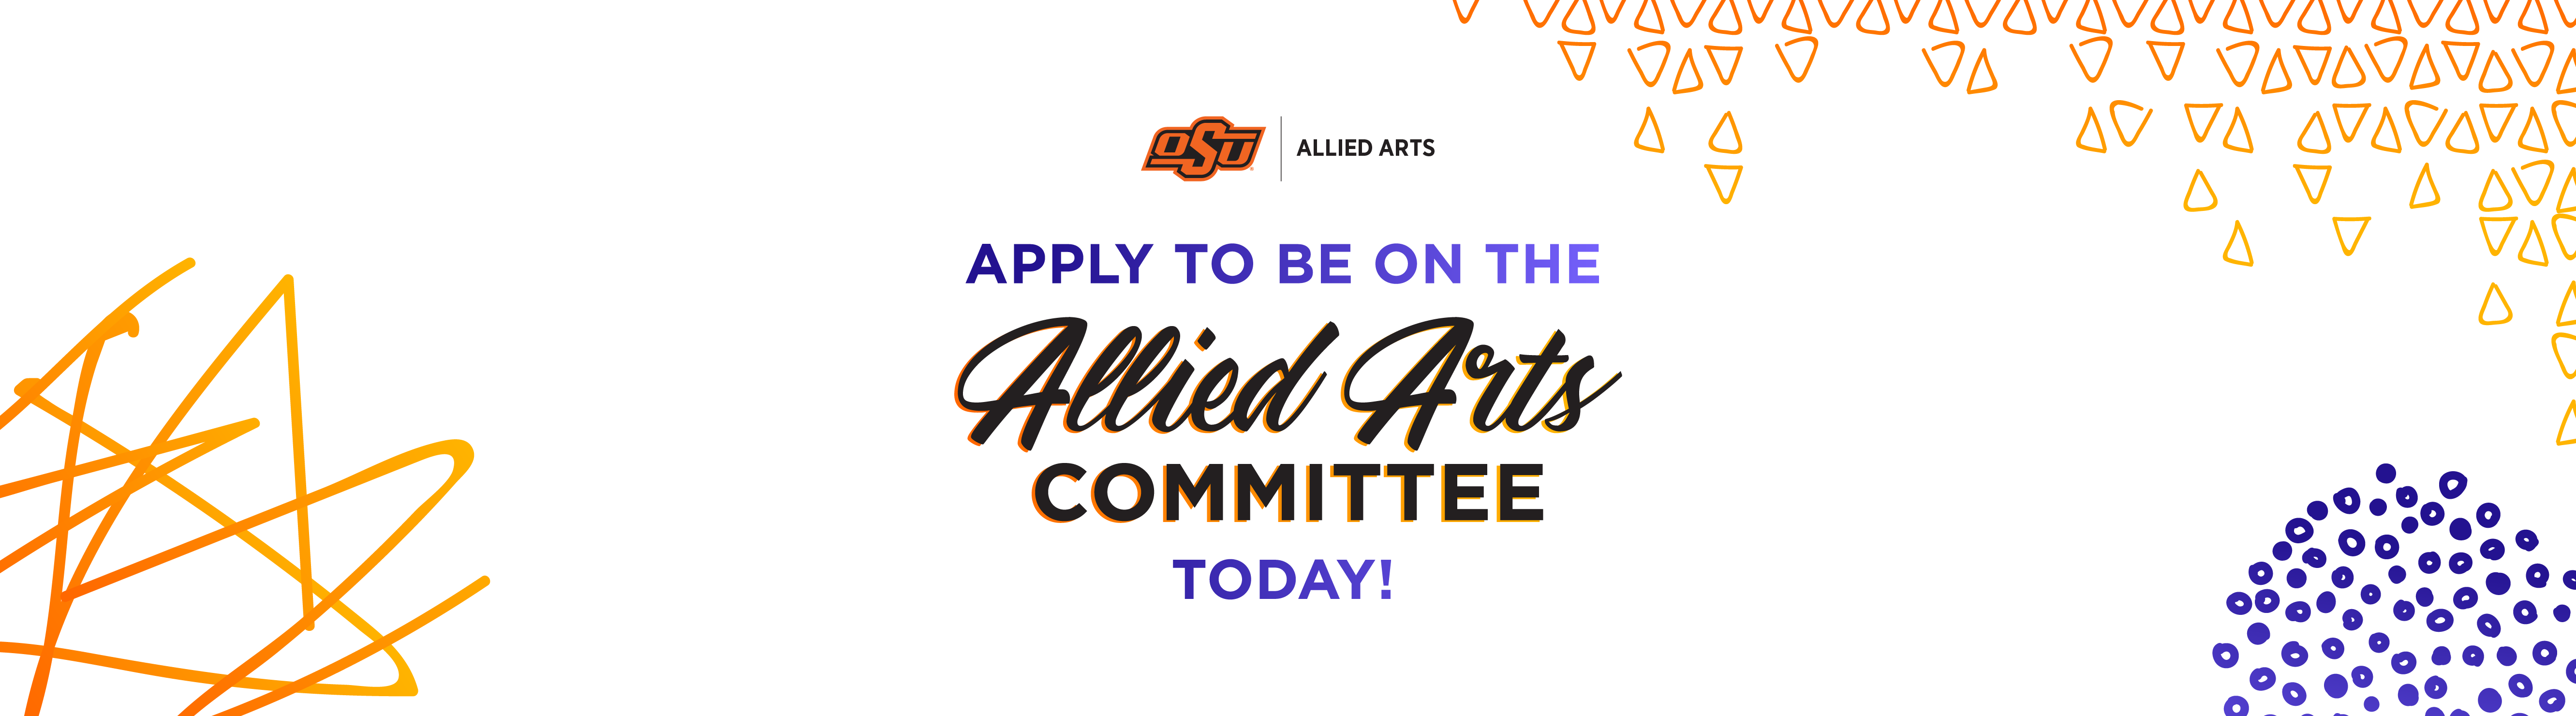 Join Allied Arts Committee today!